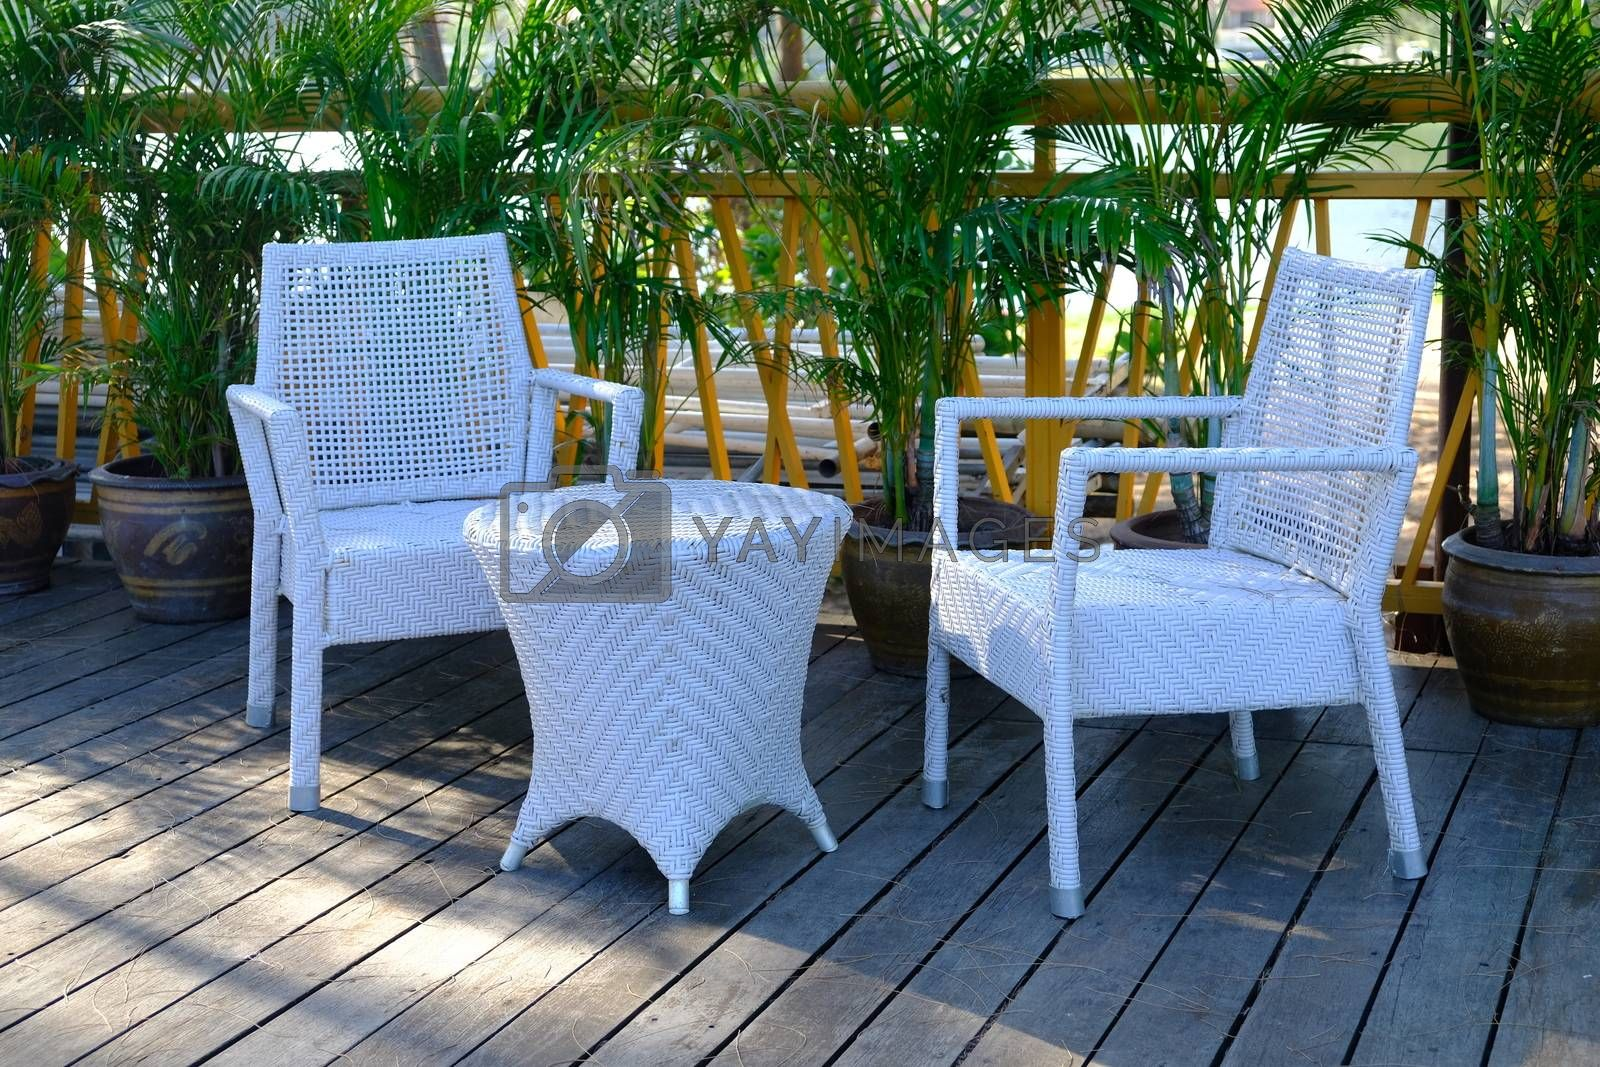 CloseUp of plastic weave chairs and table in outdoor terrace. Wicker weave outdoor Plastic furniture white color.